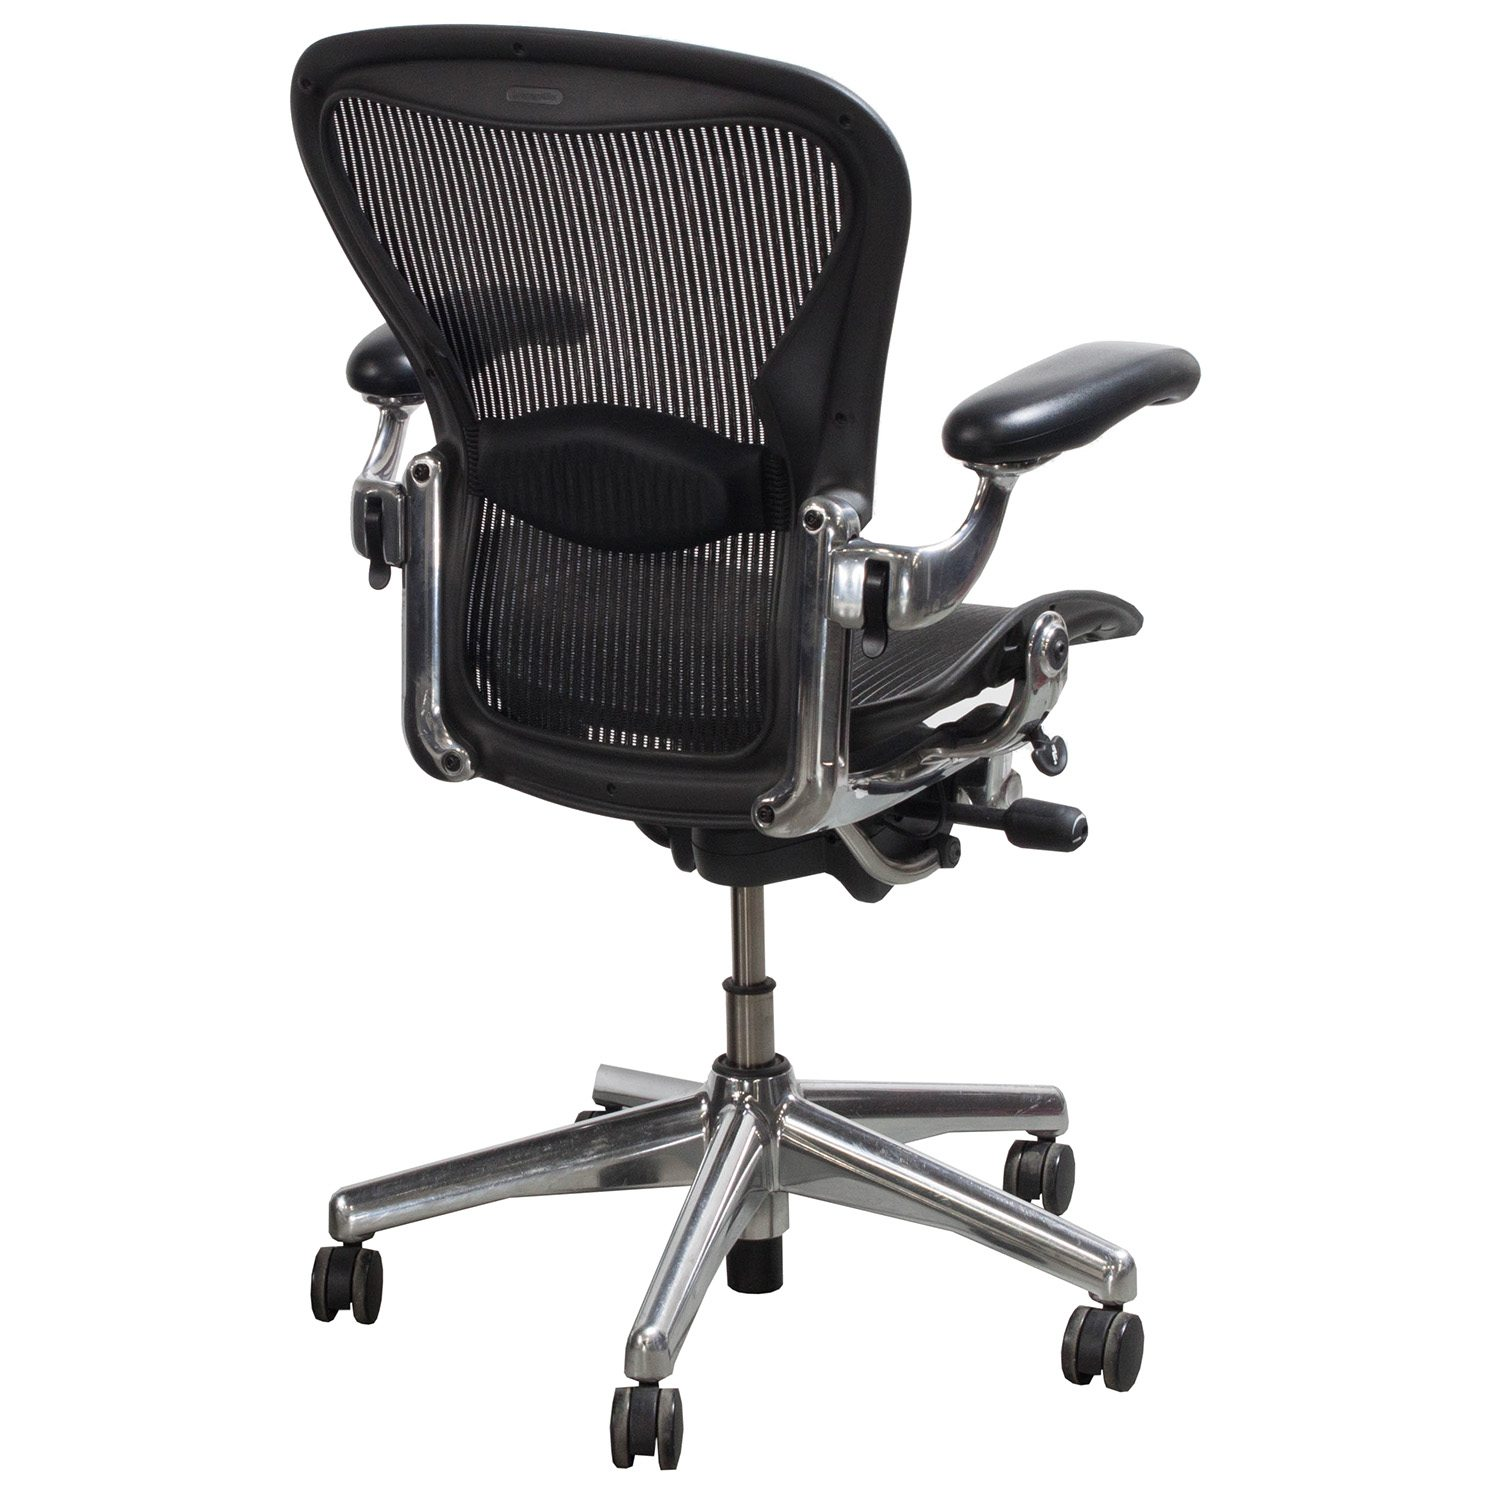 aeron chair accessories baby learning herman miller used aluminum base size b task